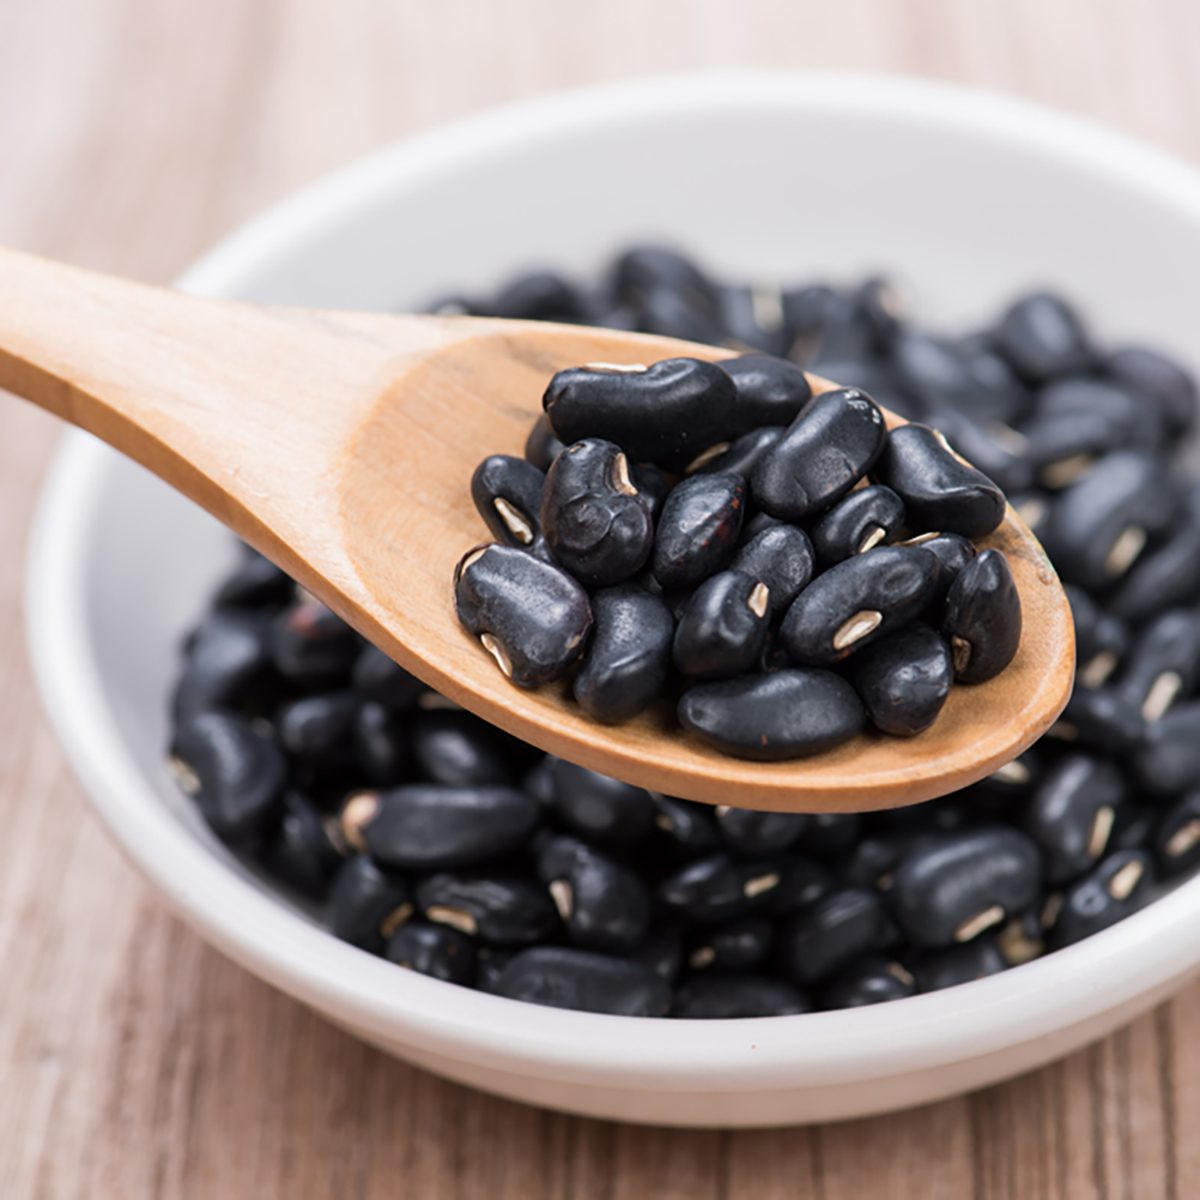 Black Beans in wooden spoon with ceramic bowl